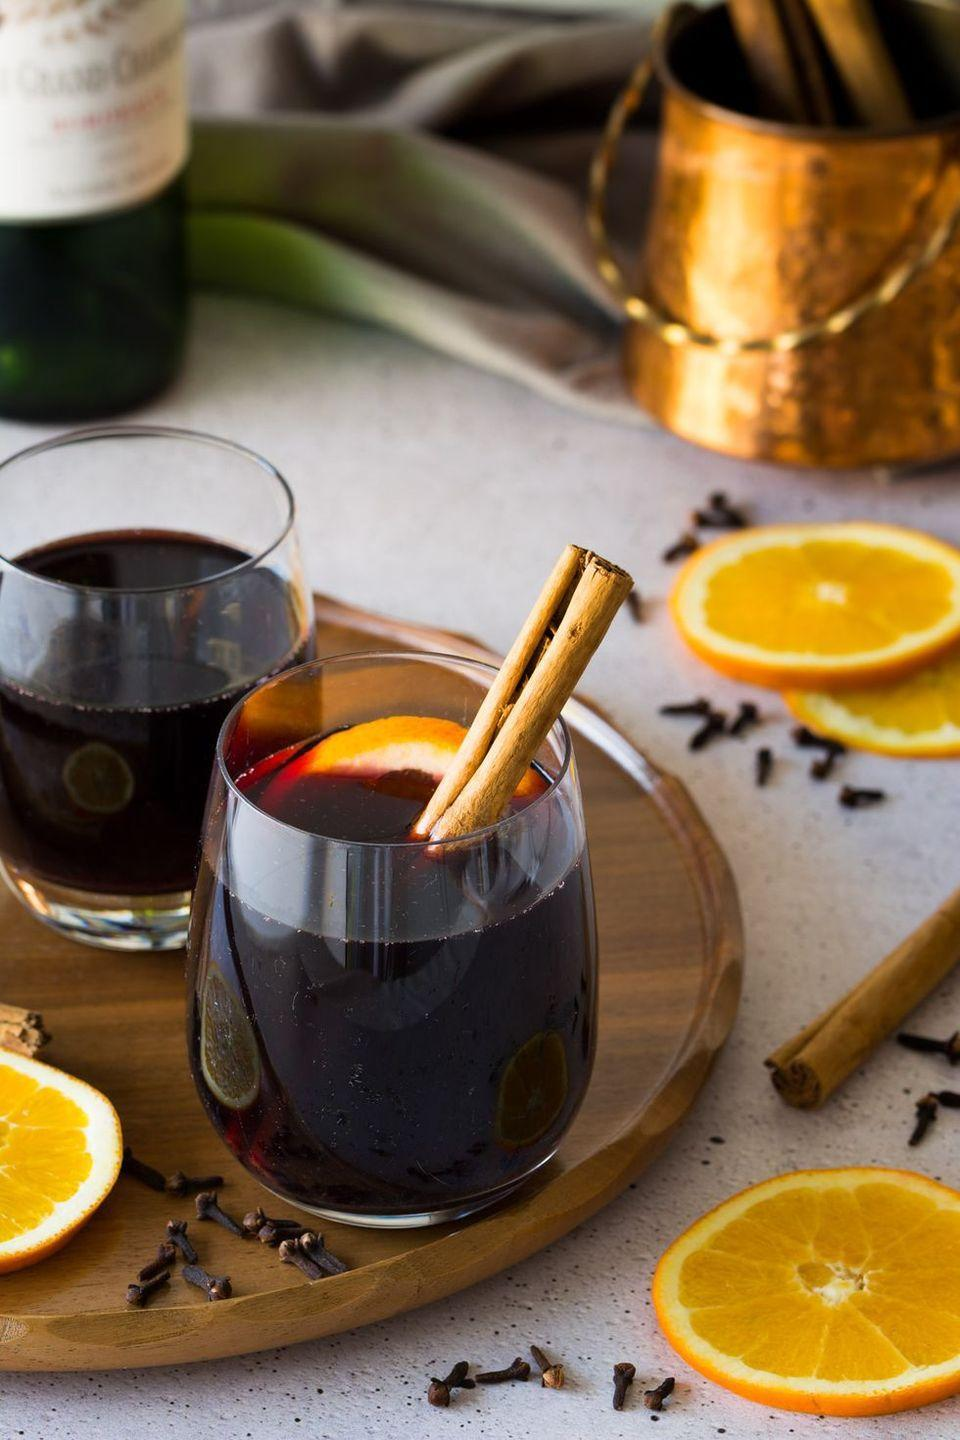 """<p>You don't have to travel to a European Christmas market to get traditional spiced wine. This hot beverage is easy to make in a big batch—perfect for a holiday party. <br></p><p><em>Get the recipe at <a href=""""http://laurencariscooks.com/christmas-market-style-gluhwein-mulled-wine/"""" rel=""""nofollow noopener"""" target=""""_blank"""" data-ylk=""""slk:Lauren Caris Cooks"""" class=""""link rapid-noclick-resp"""">Lauren Caris Cooks</a>.</em></p>"""